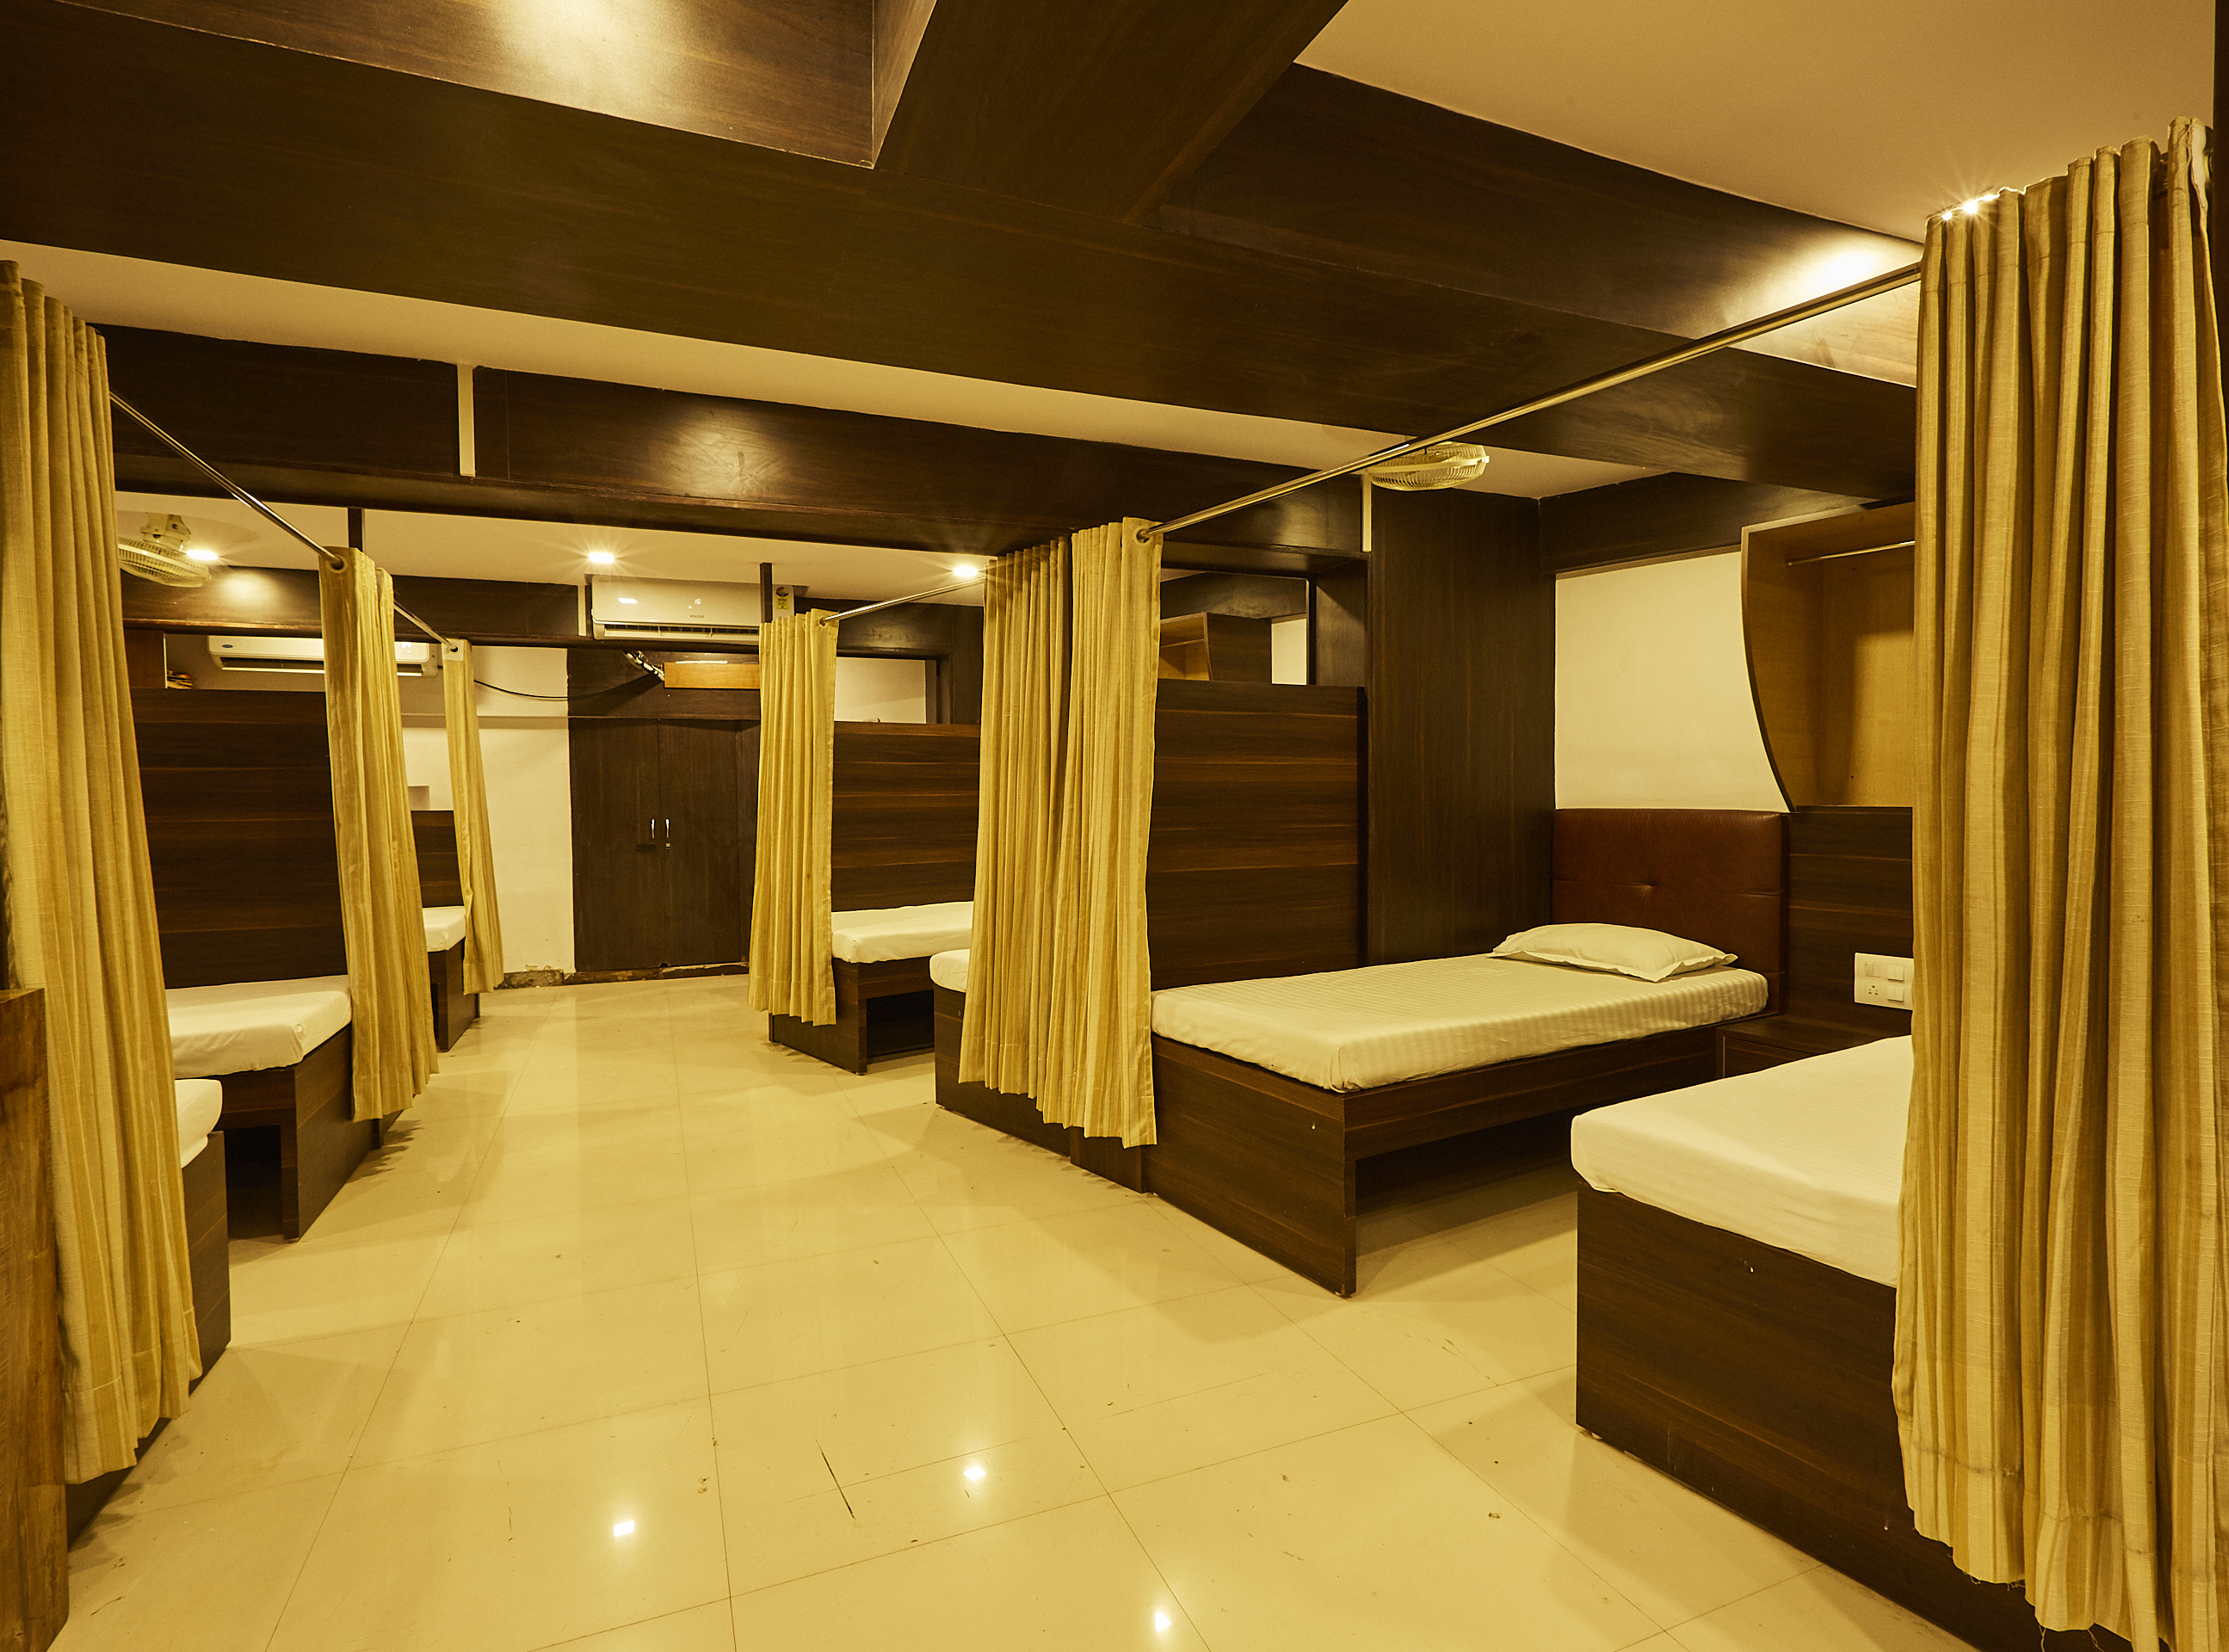 Mumbai Darbar - A Backpacker Hostel